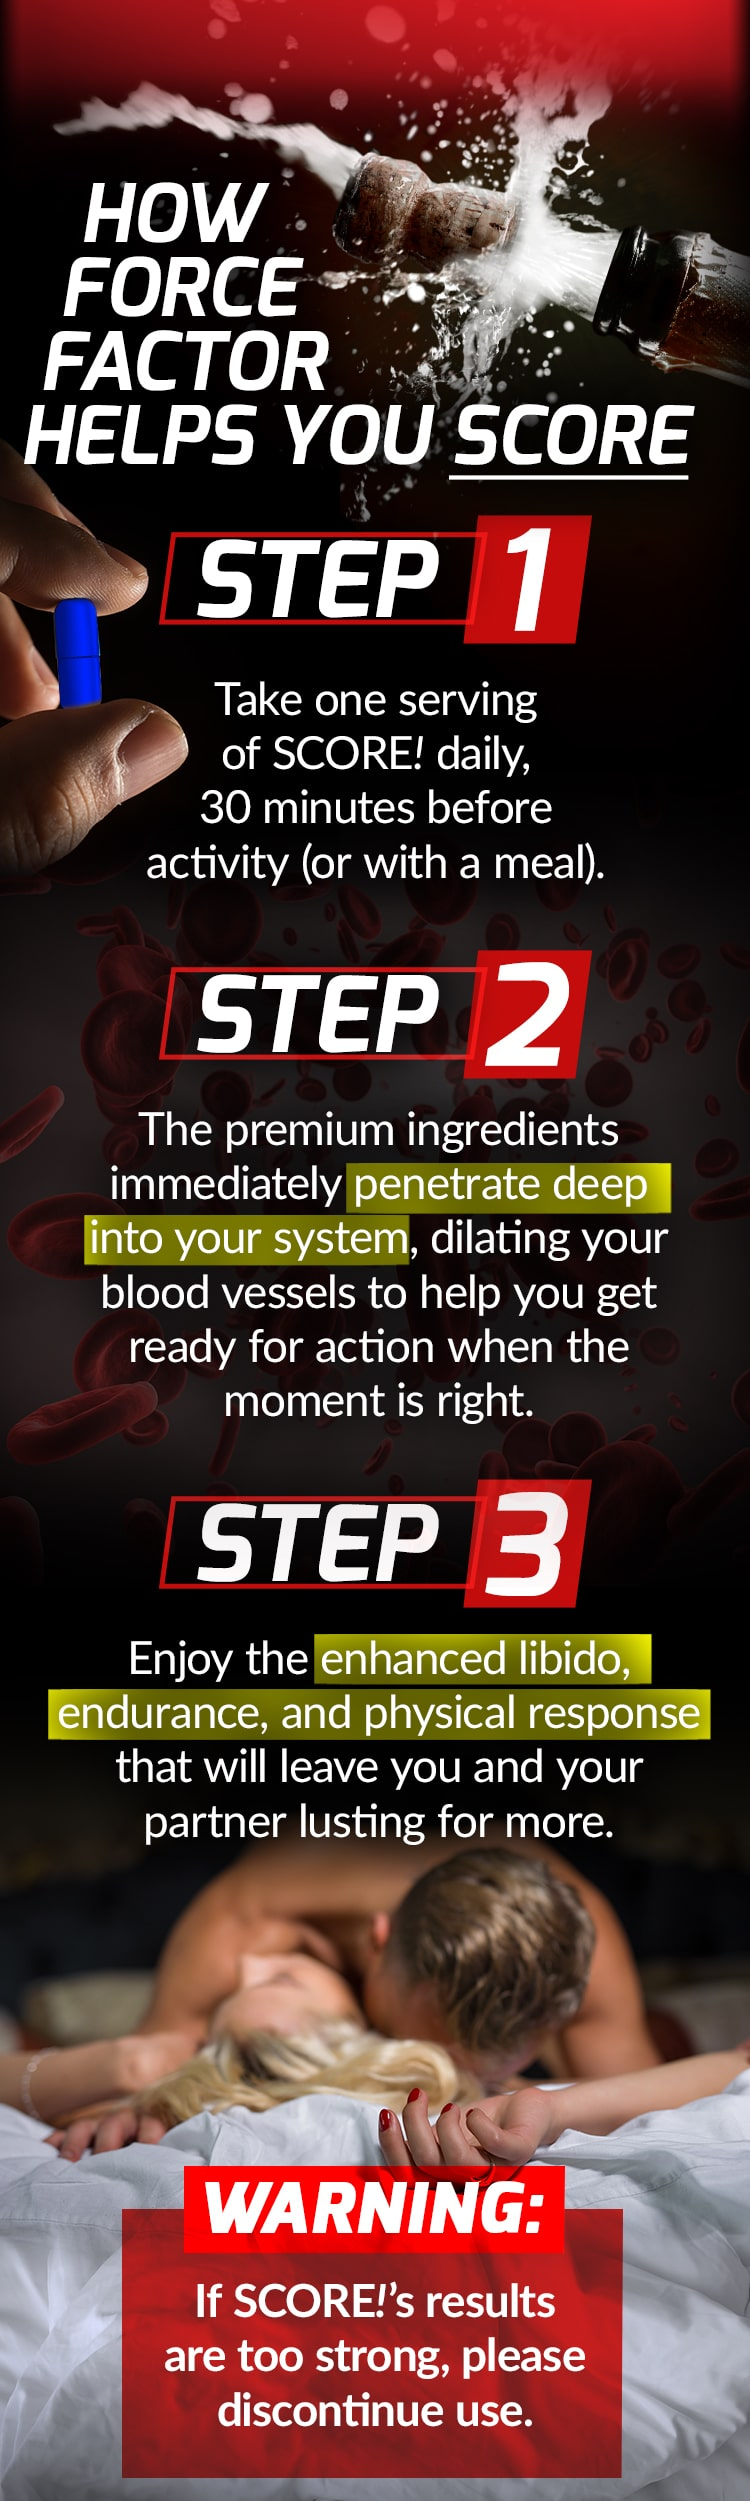 HOW FORCE FACTOR HELPS YOU SCORE: Step 1. Take one serving of SCORE! daily, 30 minutes before activity (or with a meal). Step 2. The premium ingredients immediately penetrate deep into your system, dilating your blood vessels to help you get ready for action when the moment is right. Step 3. Enjoy the enhanced libido, endurance, and physical response that will leave you and your partner lusting for more. WARNING: If SCORE!'s results are too strong, please discontinue use.